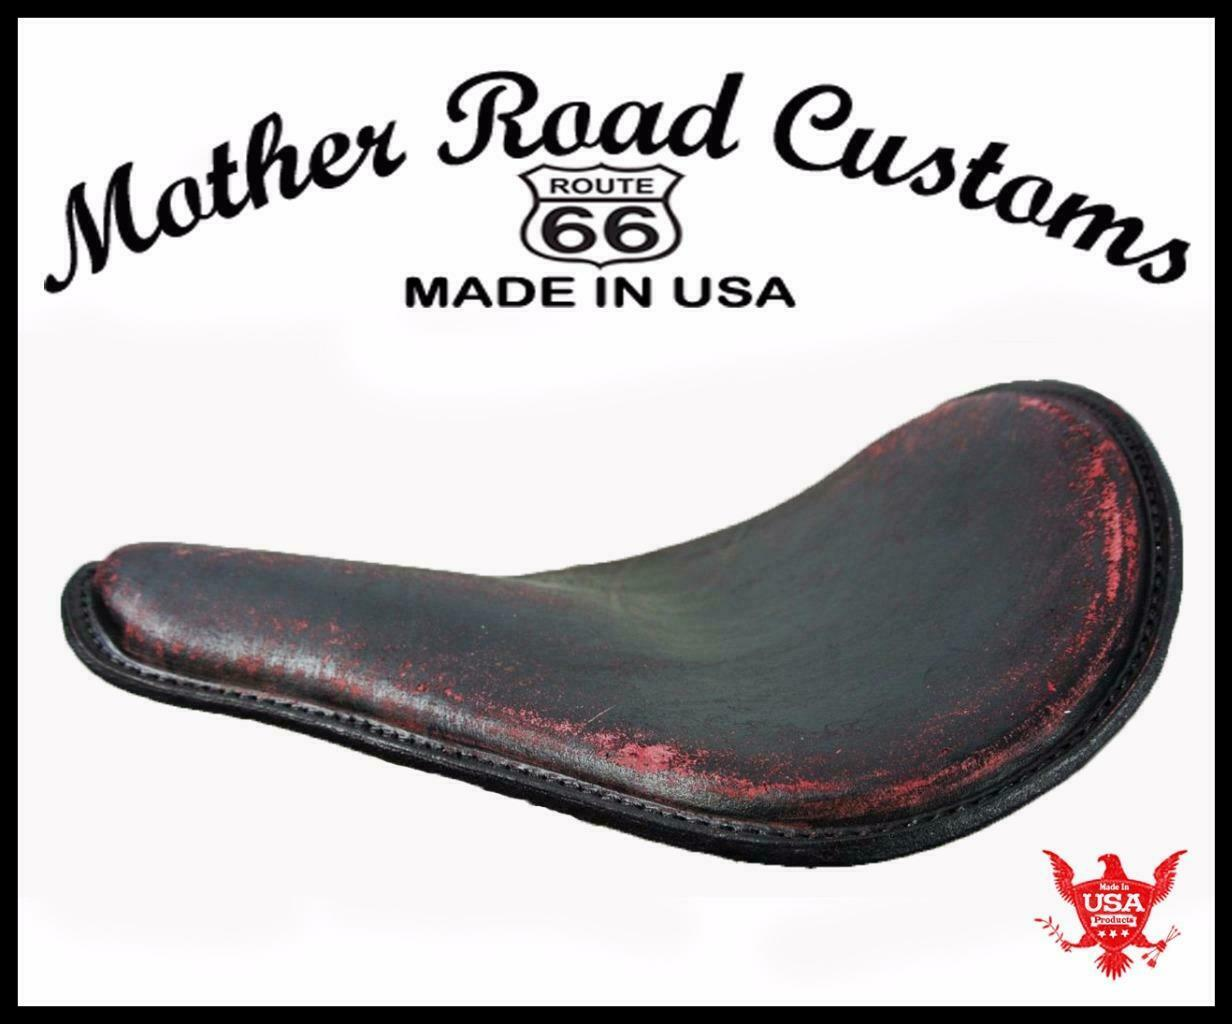 SPRING SOLO SEAT CHOPPER BOBBER HARLEY SPORTSTER NIGHTSTE USA 12x13 BLK RED DIS